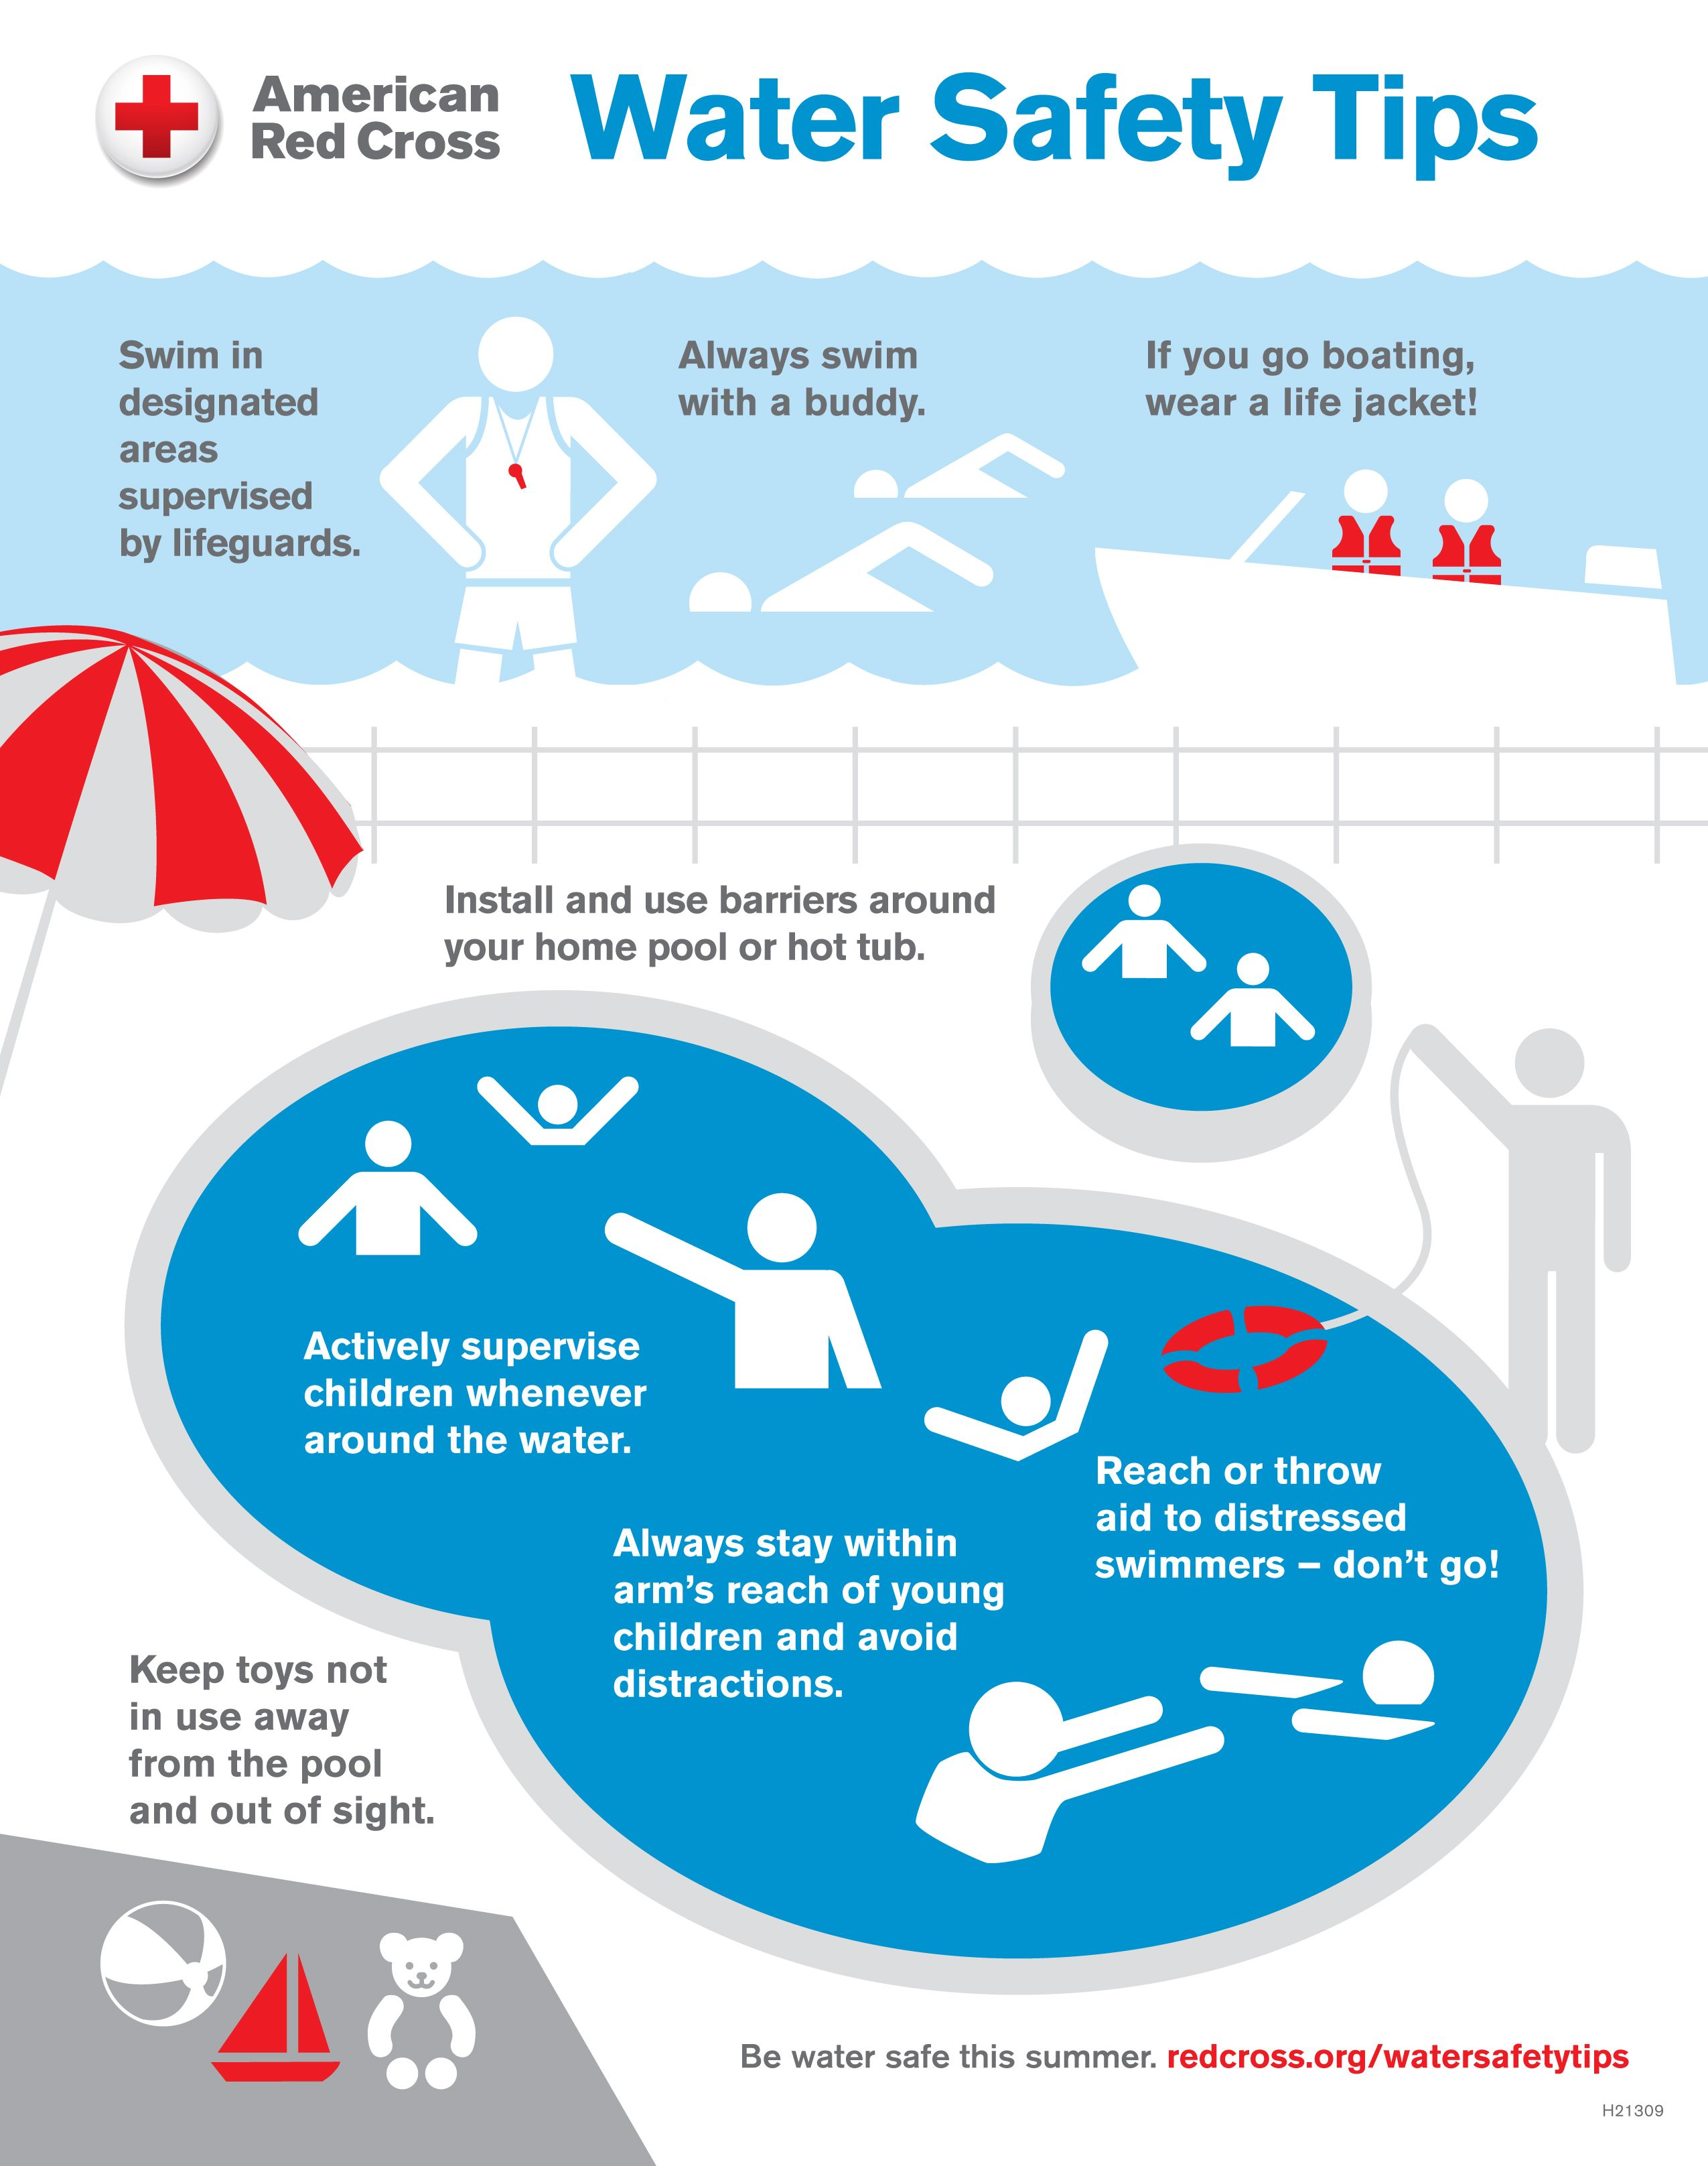 Safety on the water: to avoid trouble